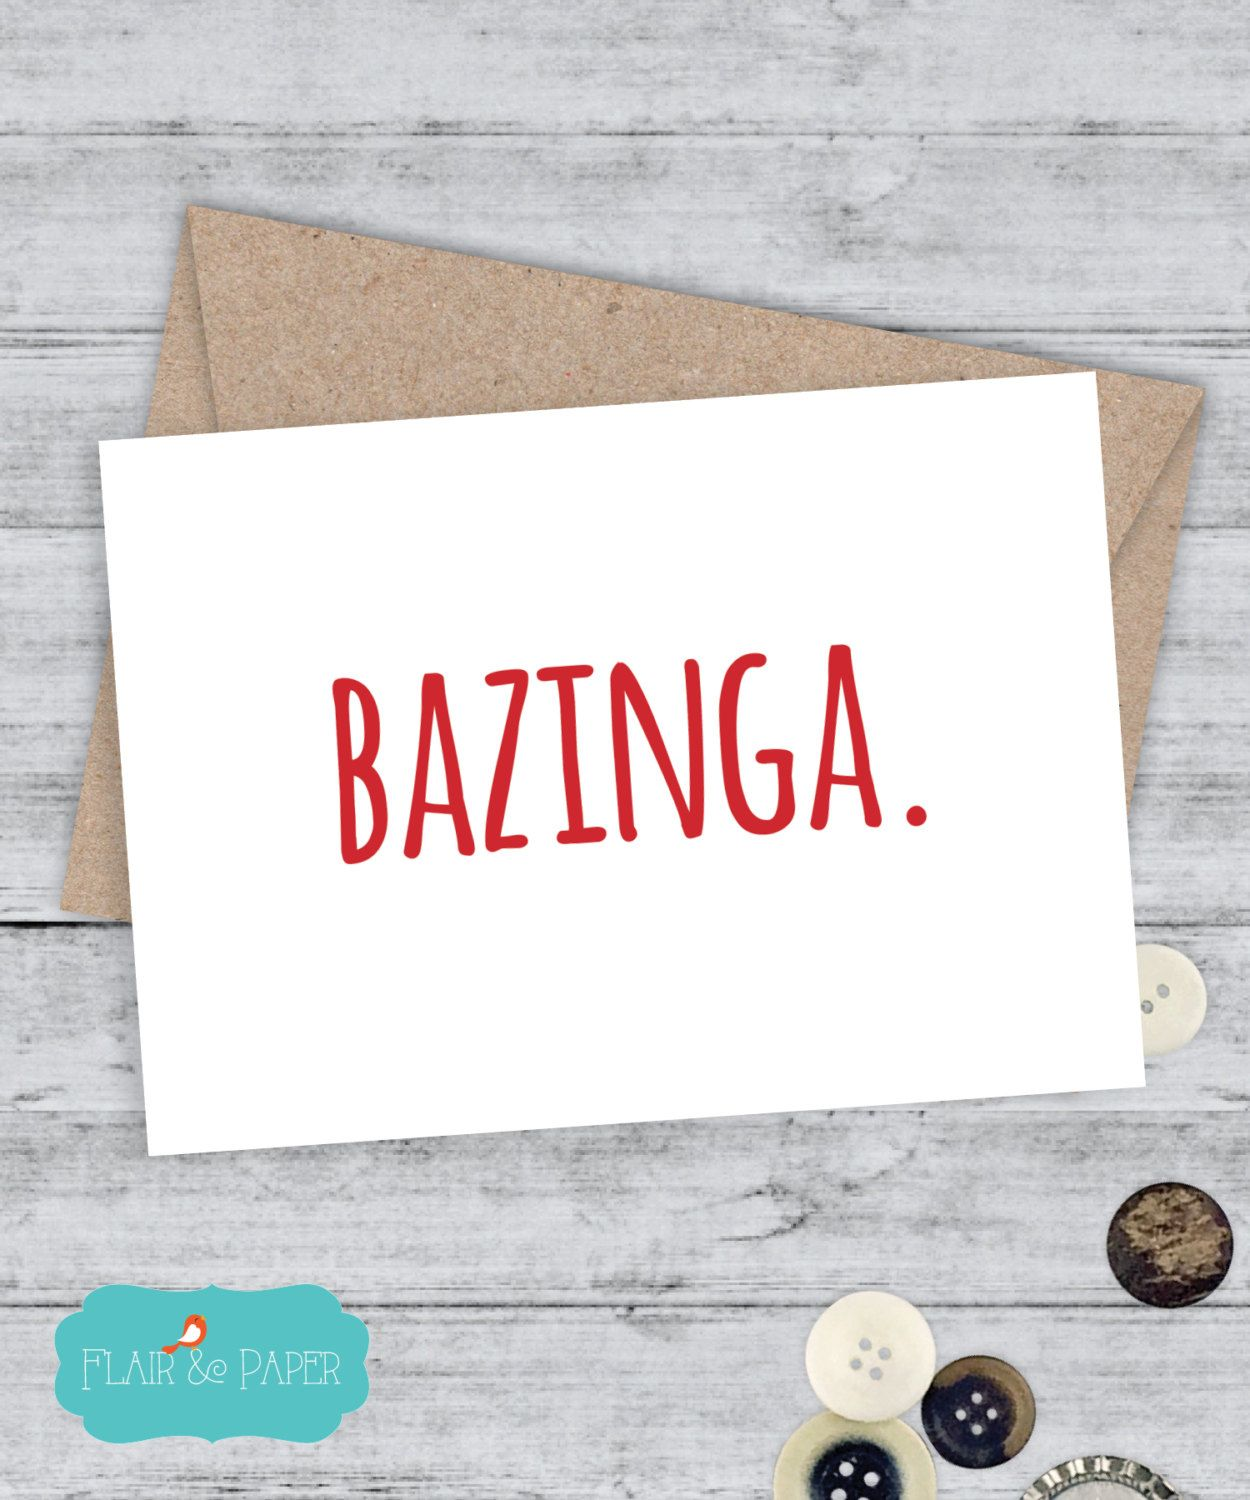 Boyfriend Card Bazinga Big Bang Theory Inspired Funny Birthday By FlairandPaper On Etsy